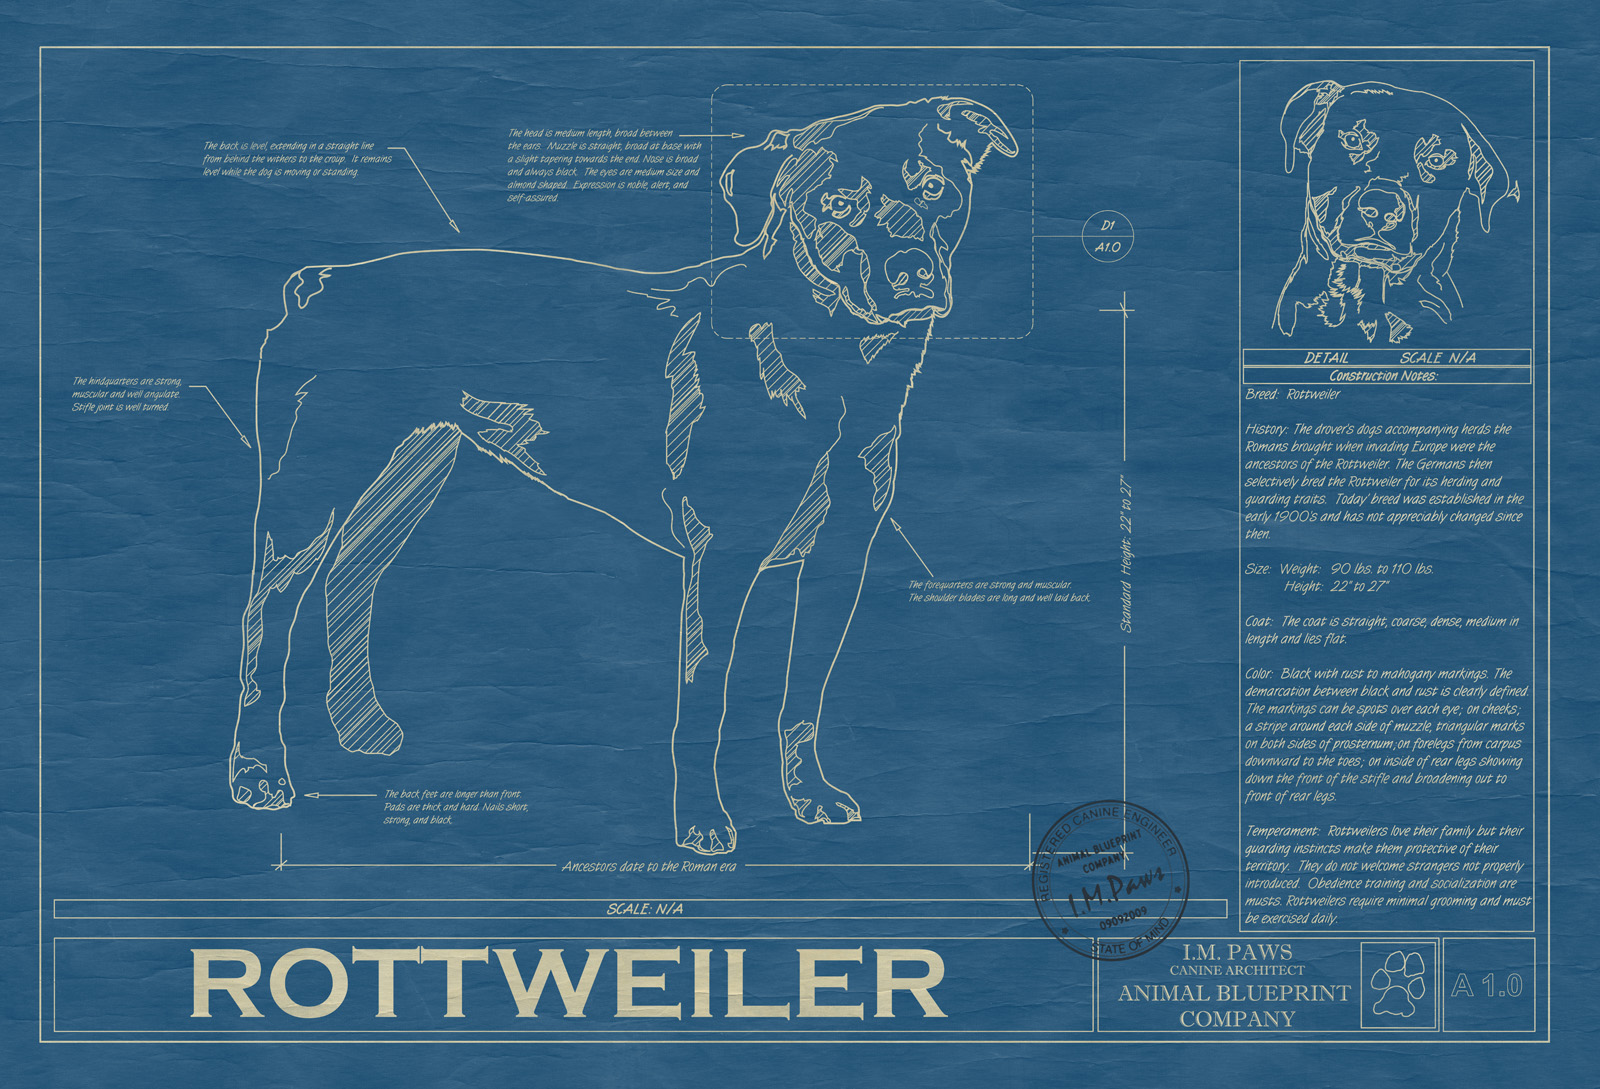 Rottweiler animal blueprint company rottweiler dog blueprint malvernweather Image collections